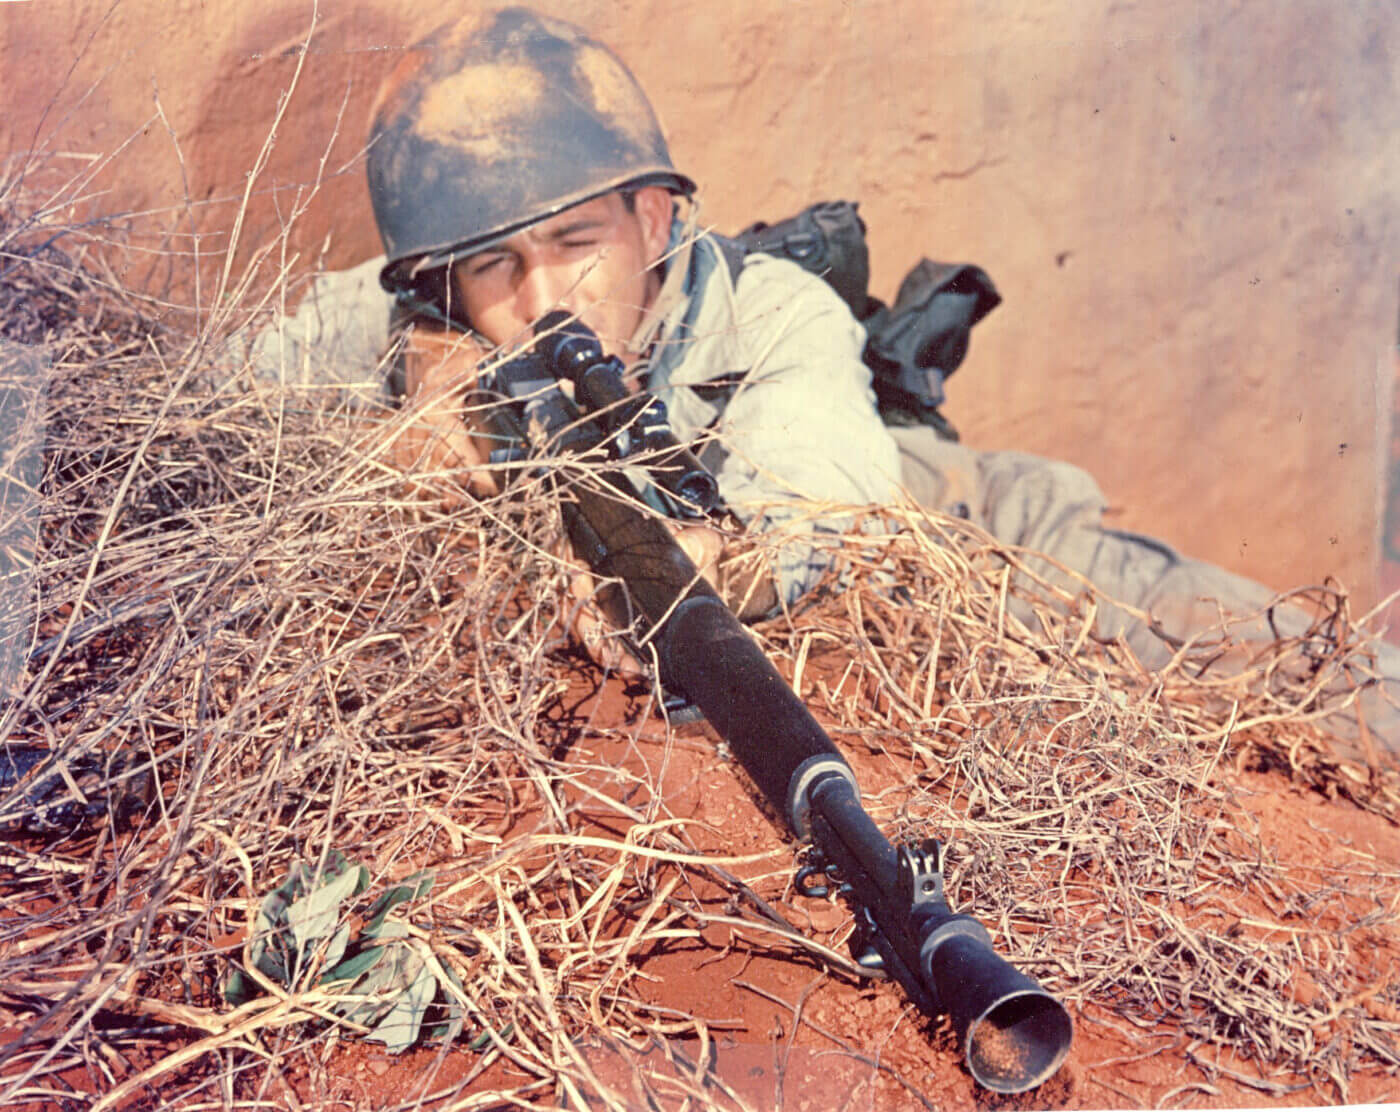 M1C sniper rifle in WWII